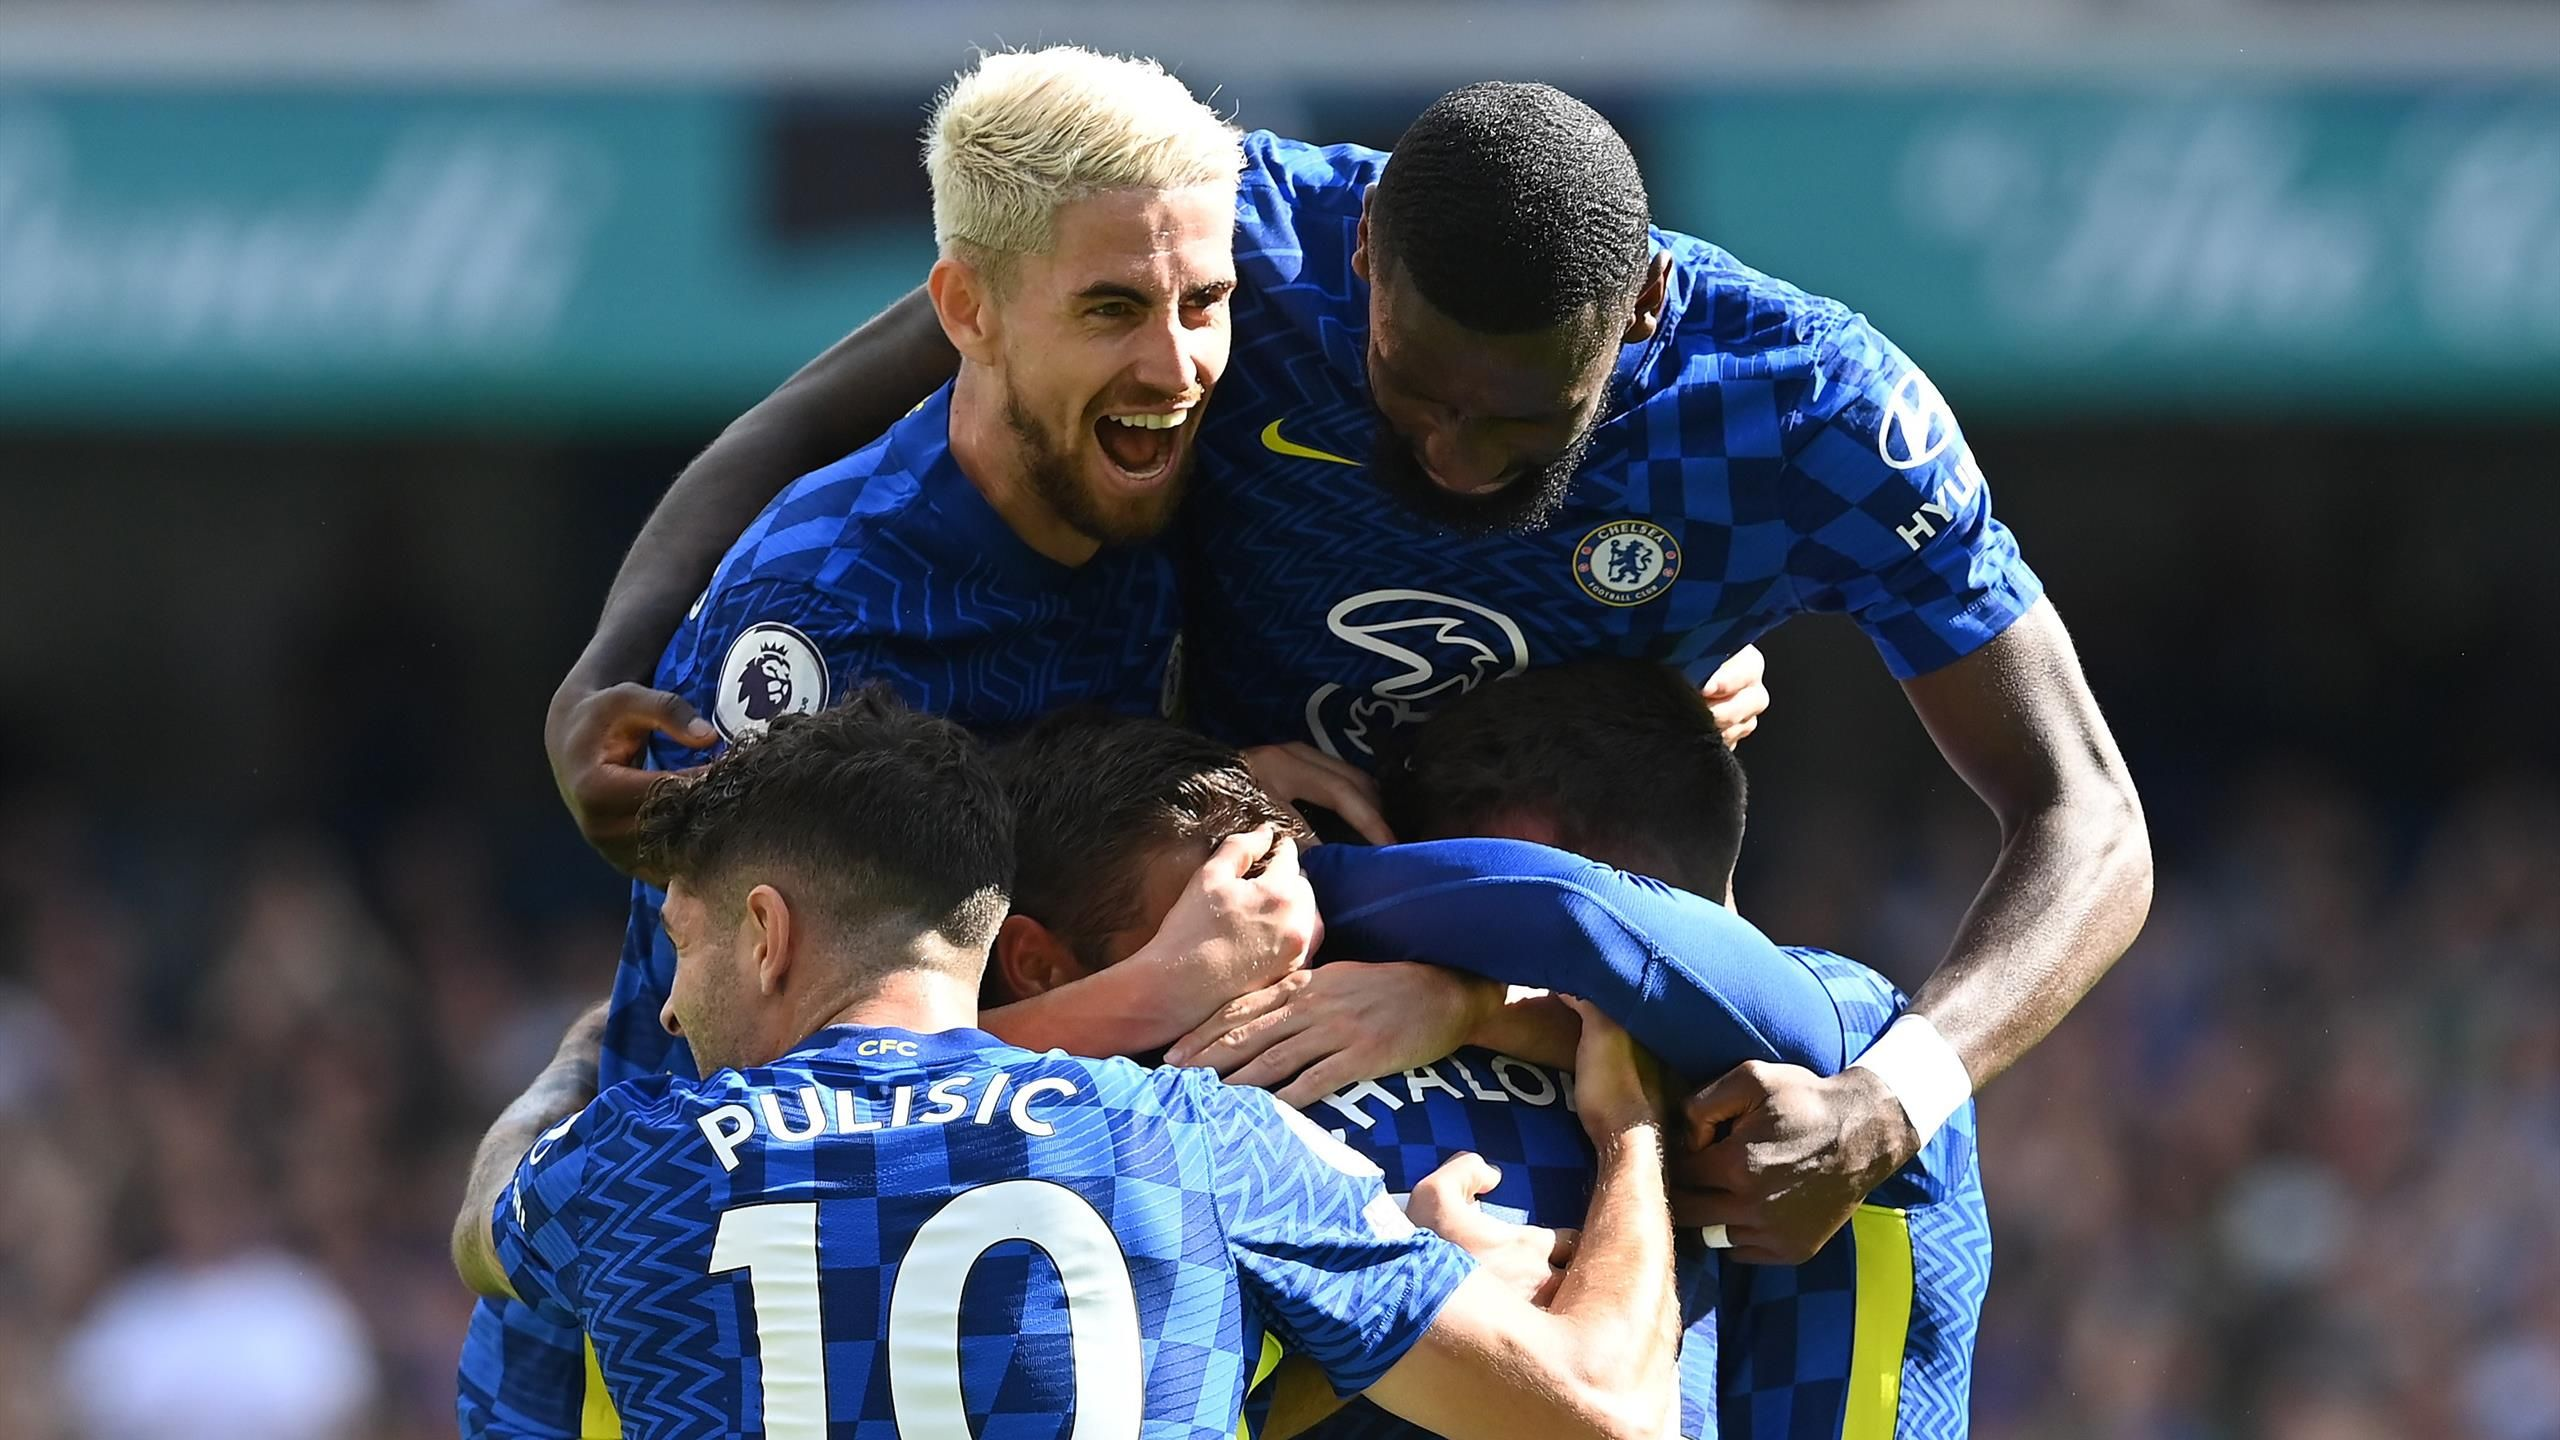 Alonso, Pulisic and debutant Chalobah score as Chelsea coast past Palace